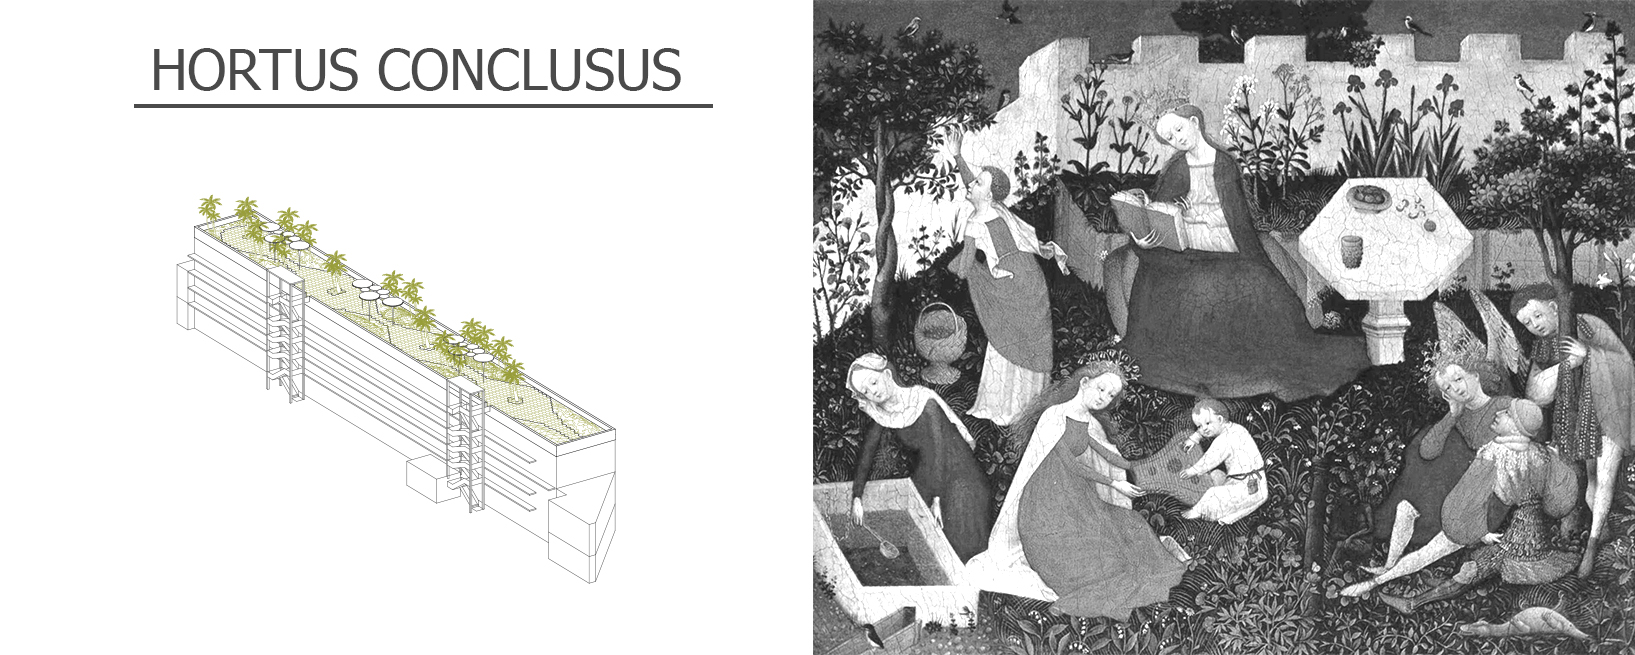 """The Hortus Conclusus."" Drawing by Lydia Karagiannaki and Vytautas Lelys."